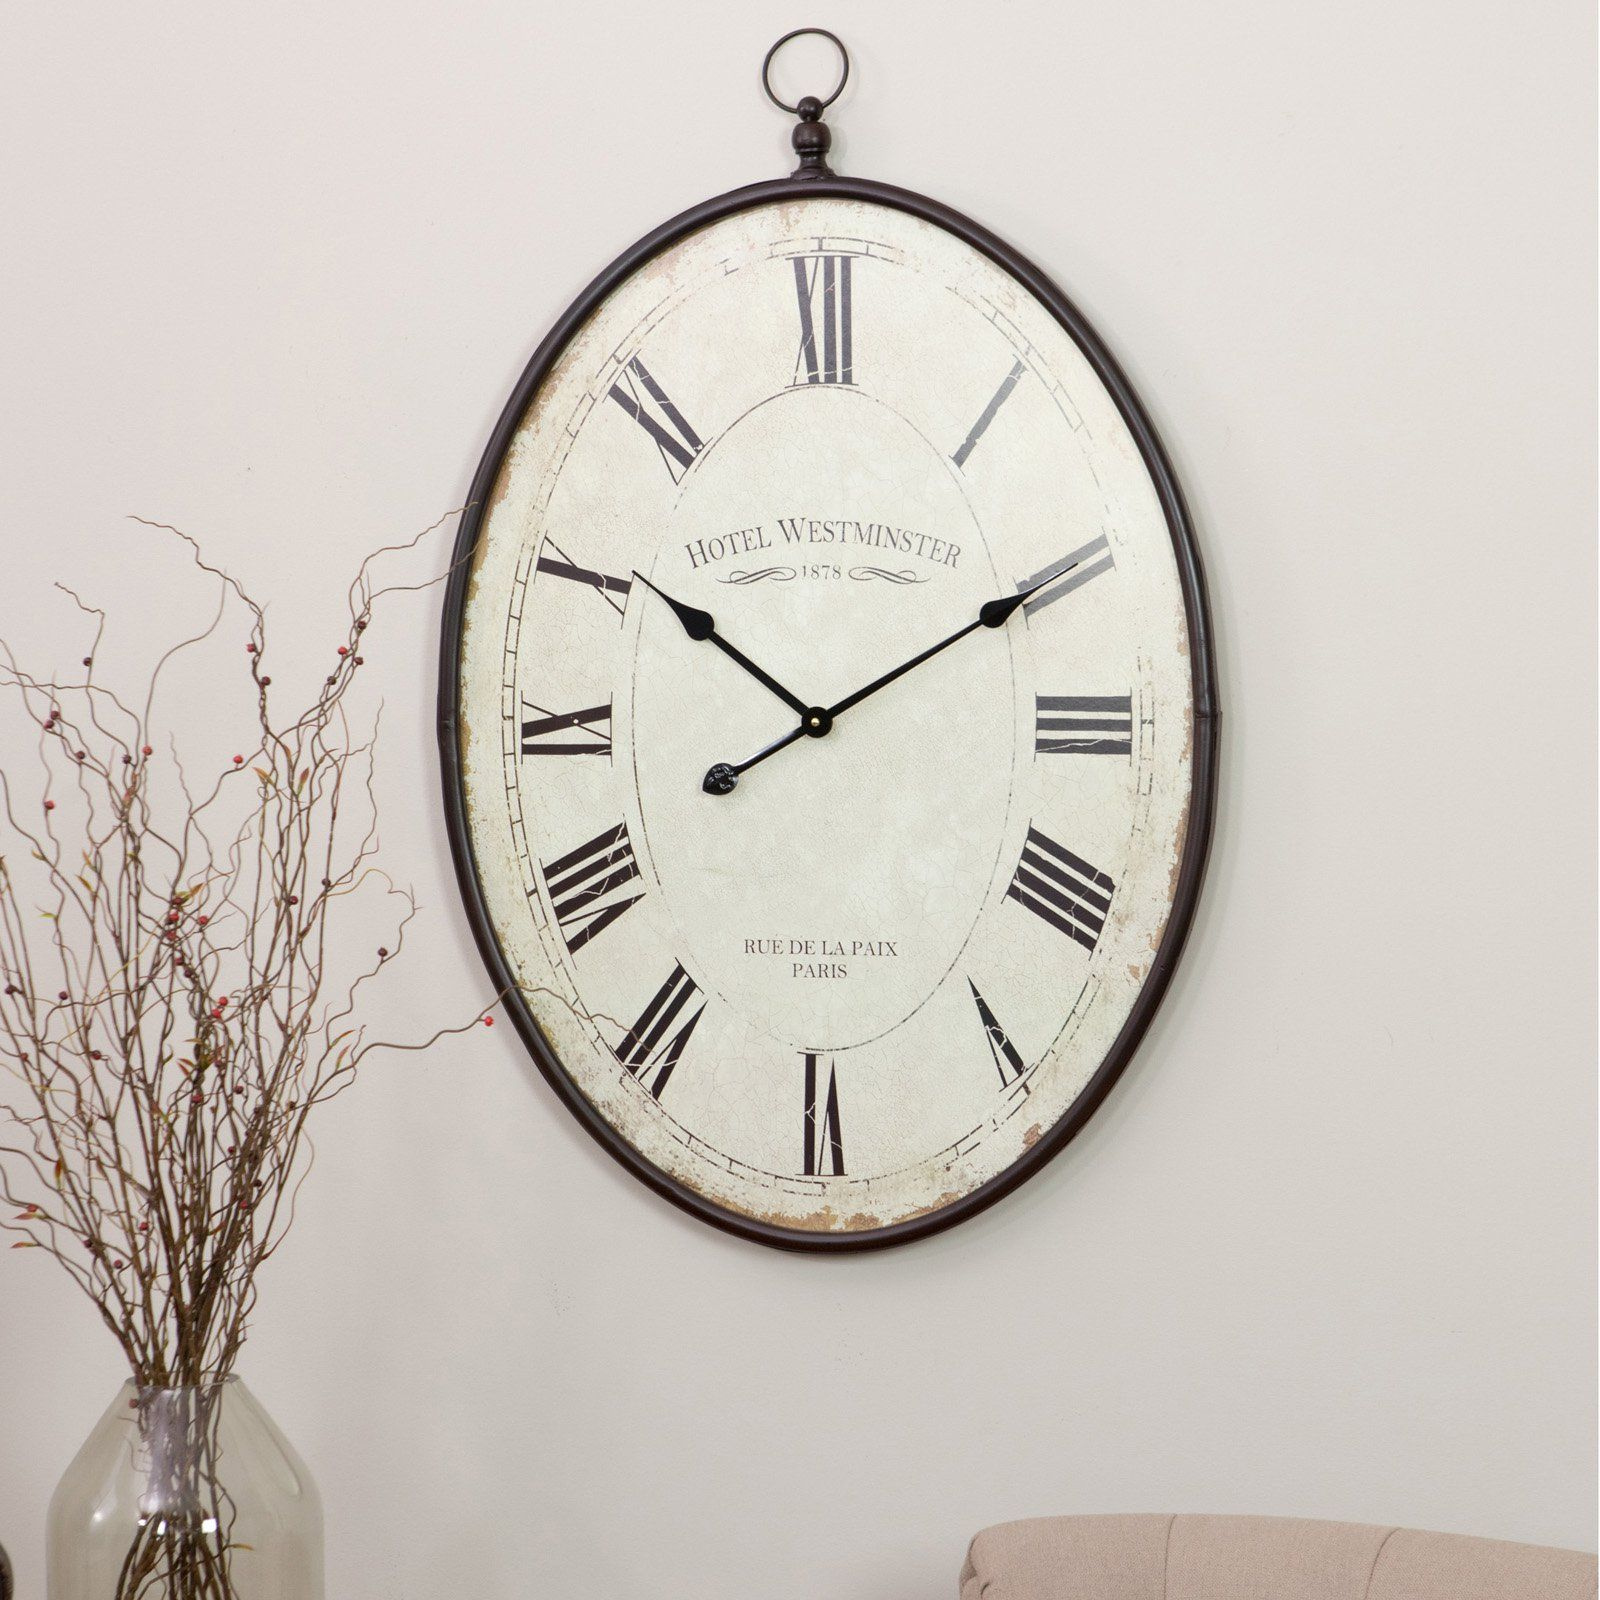 Aspire 5841 36 X 23 5 X 1 5 In Ines Large Oval Wall Clock Brown Walmart Com In 2021 Large Oval Wall Clock Wall Clock Oversized Wall Clock